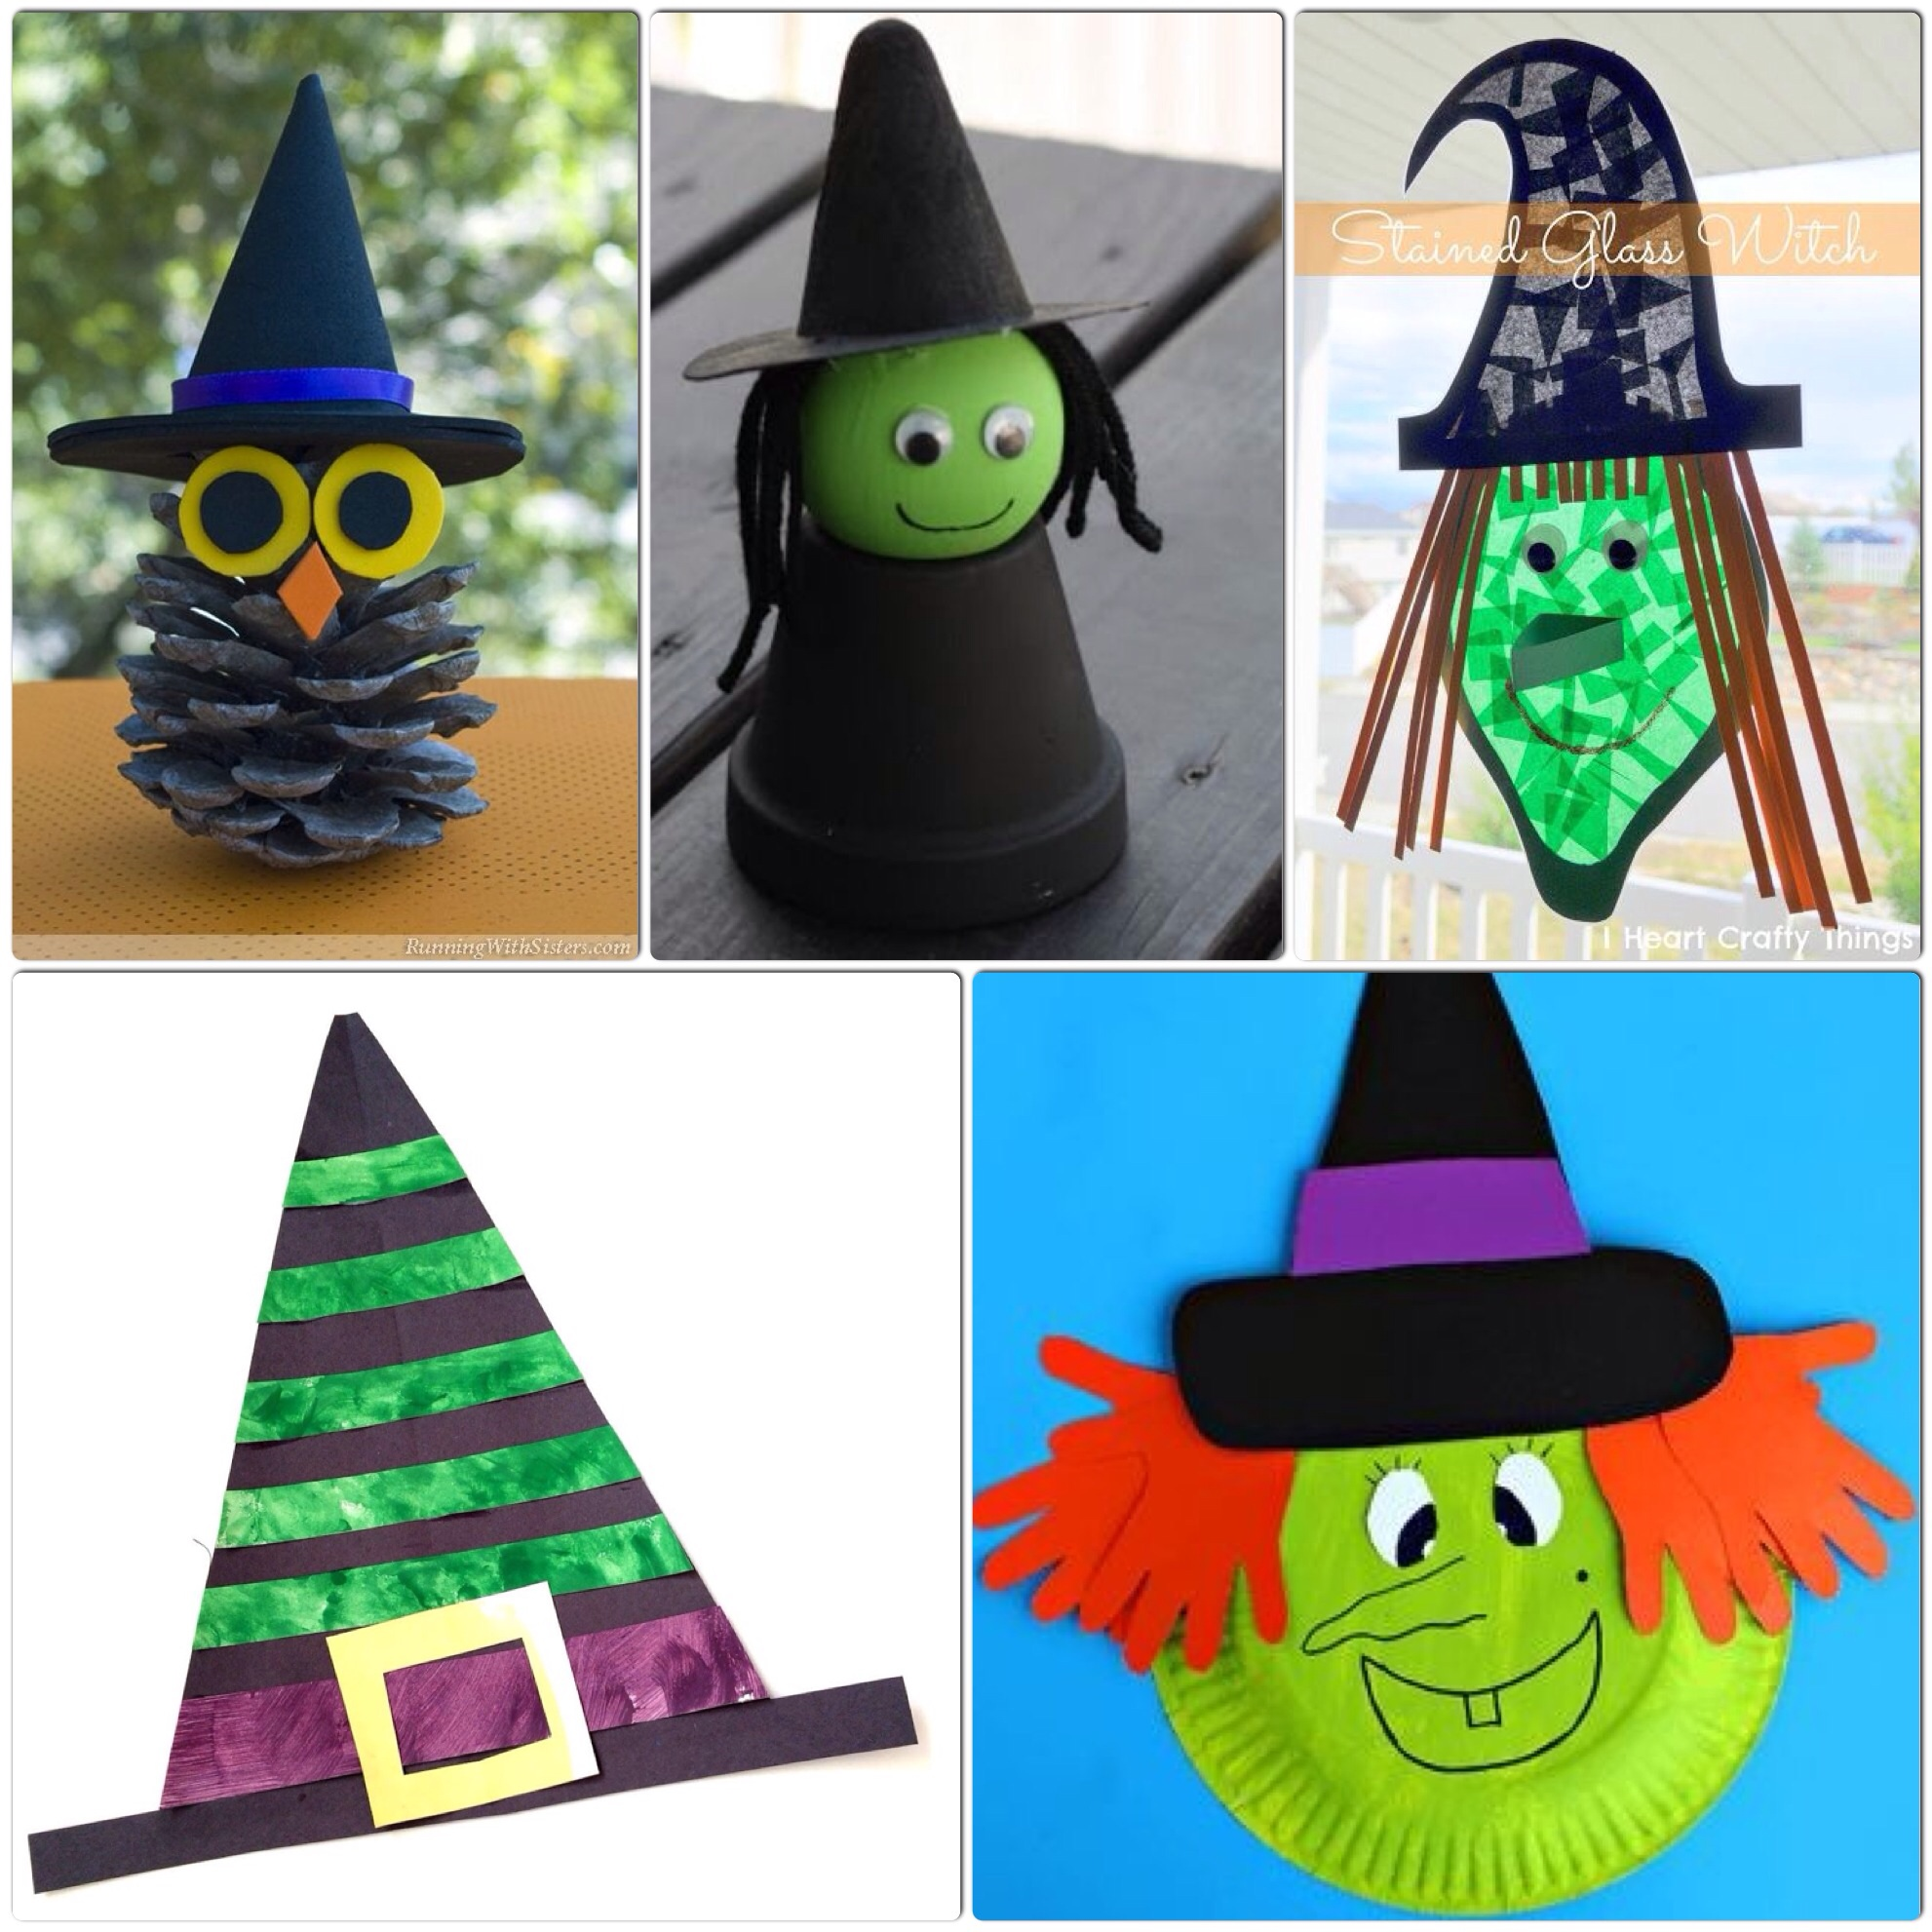 Halloween Crafts And Decorations: Witch Crafts For Kids – More Halloween Fun!